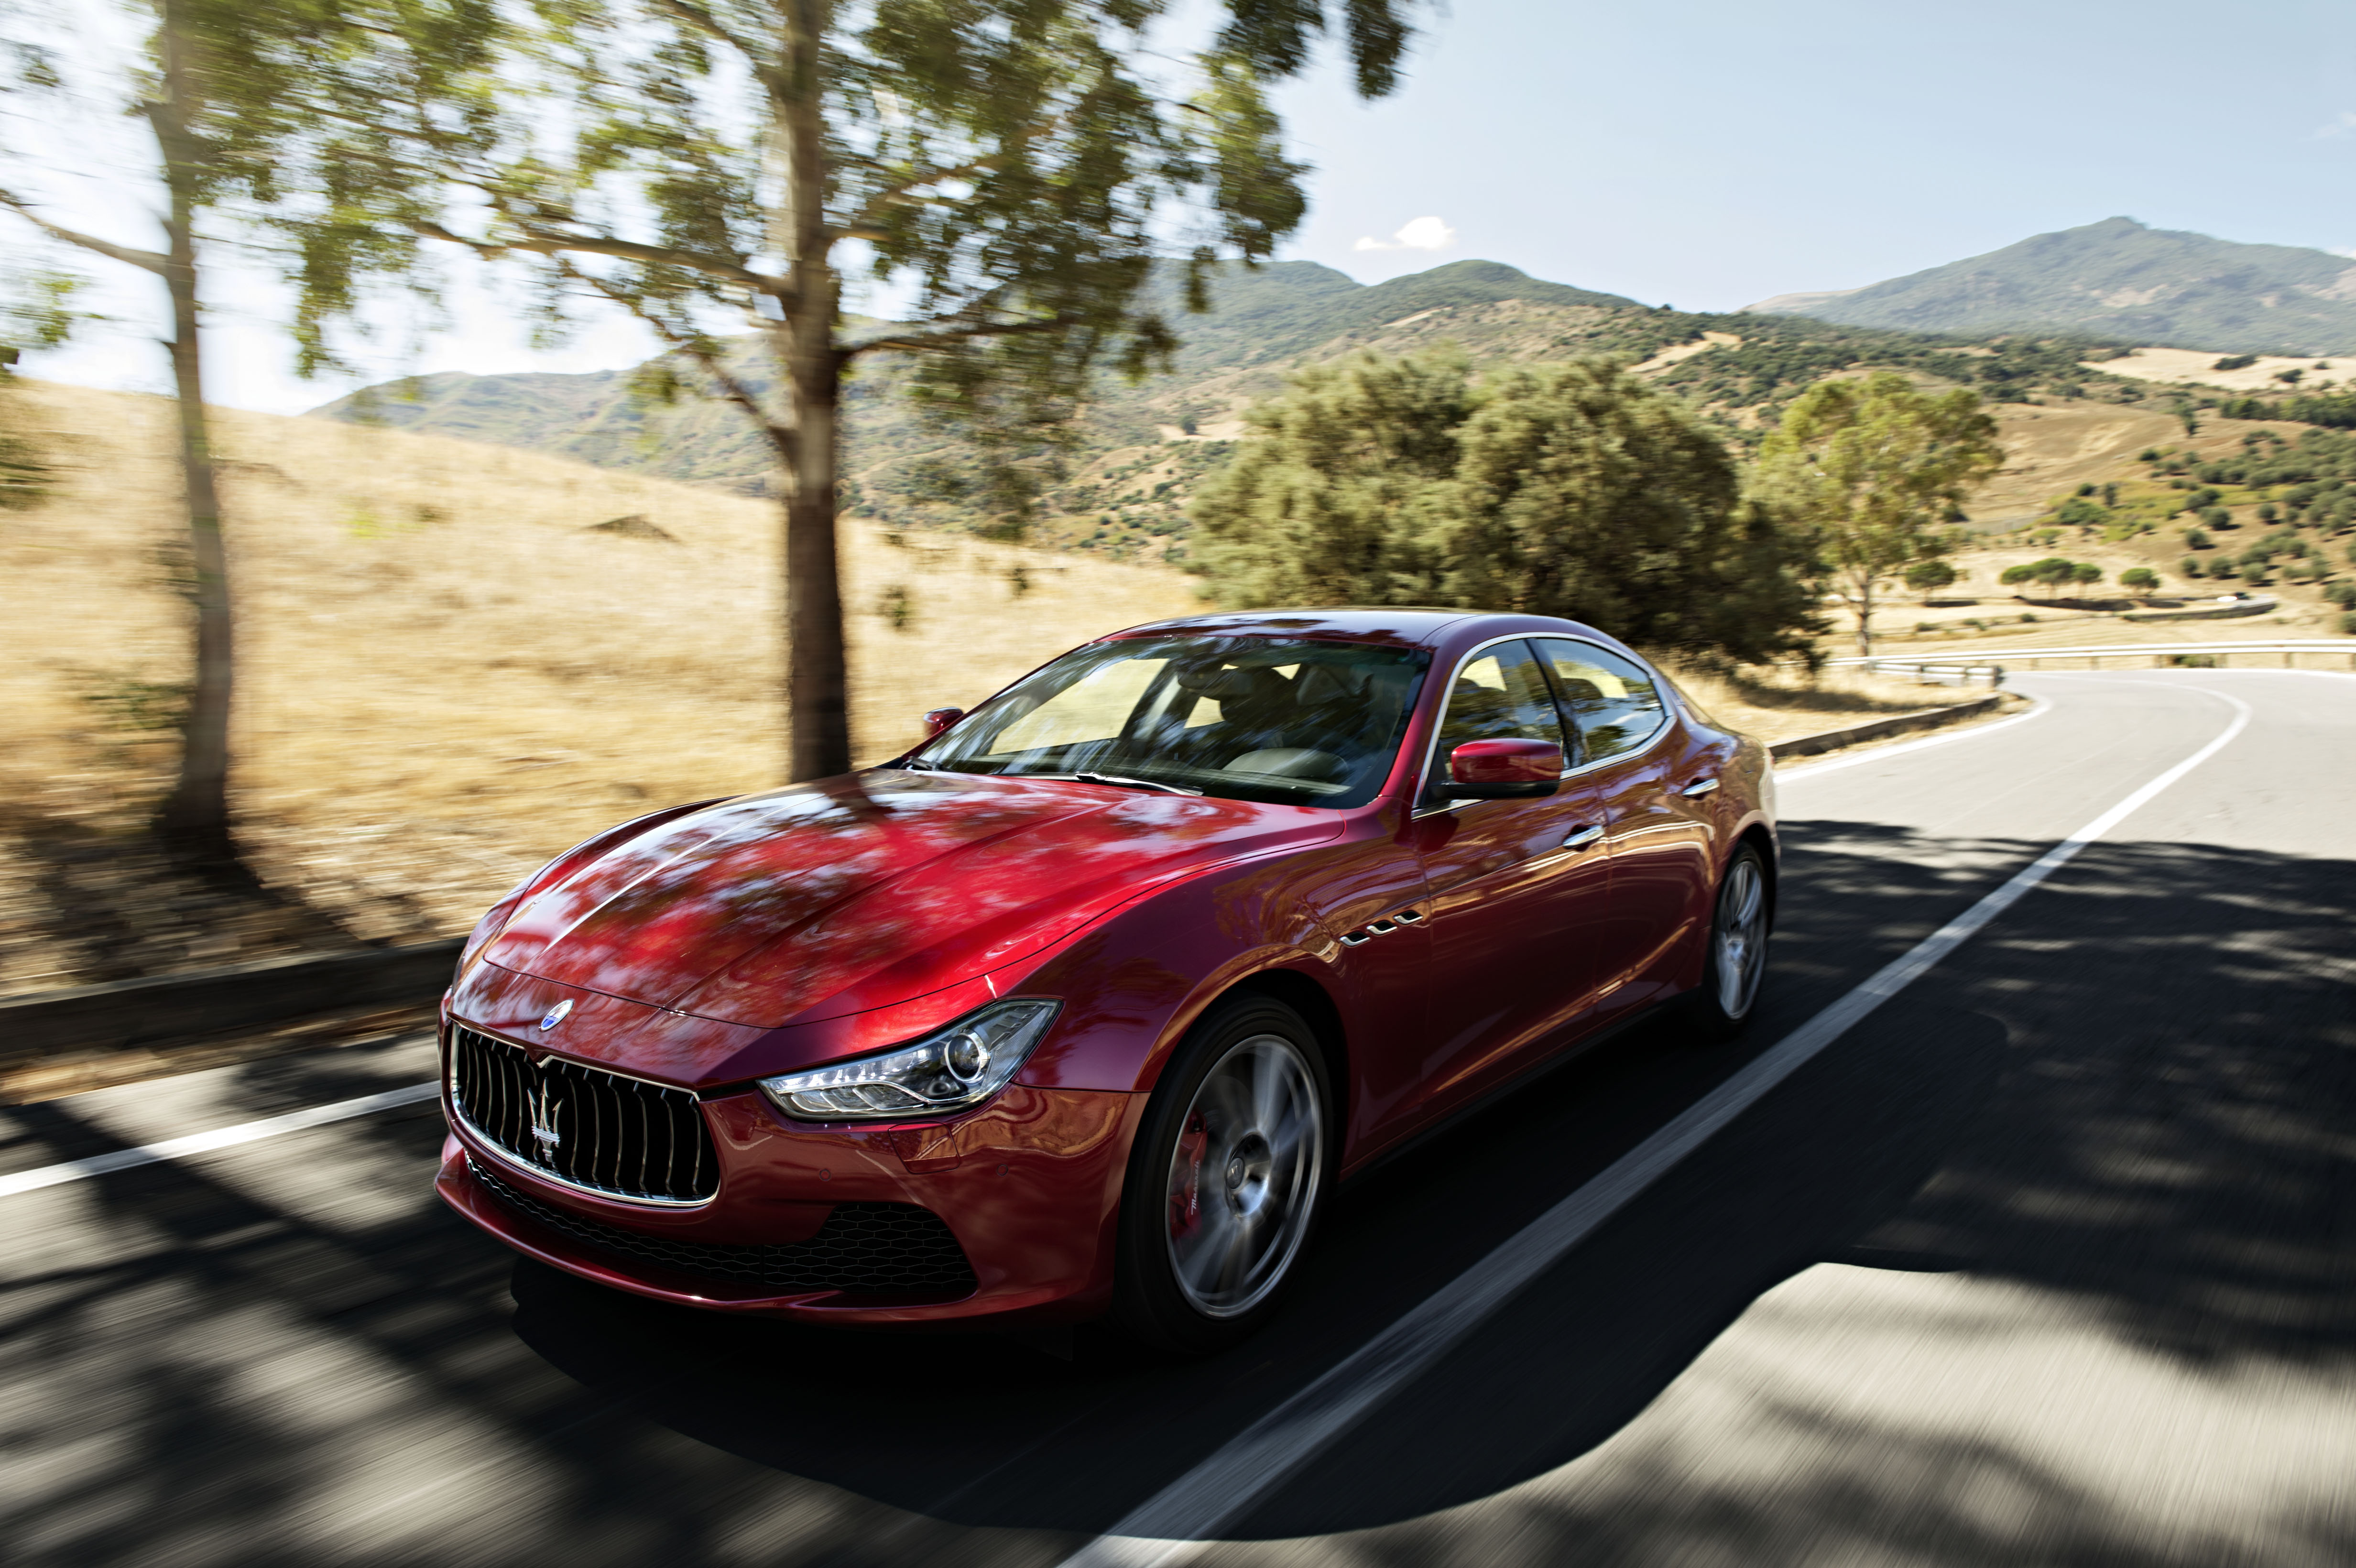 Italian Luxury Car Manufacturer Maserati Re Starts Operations In